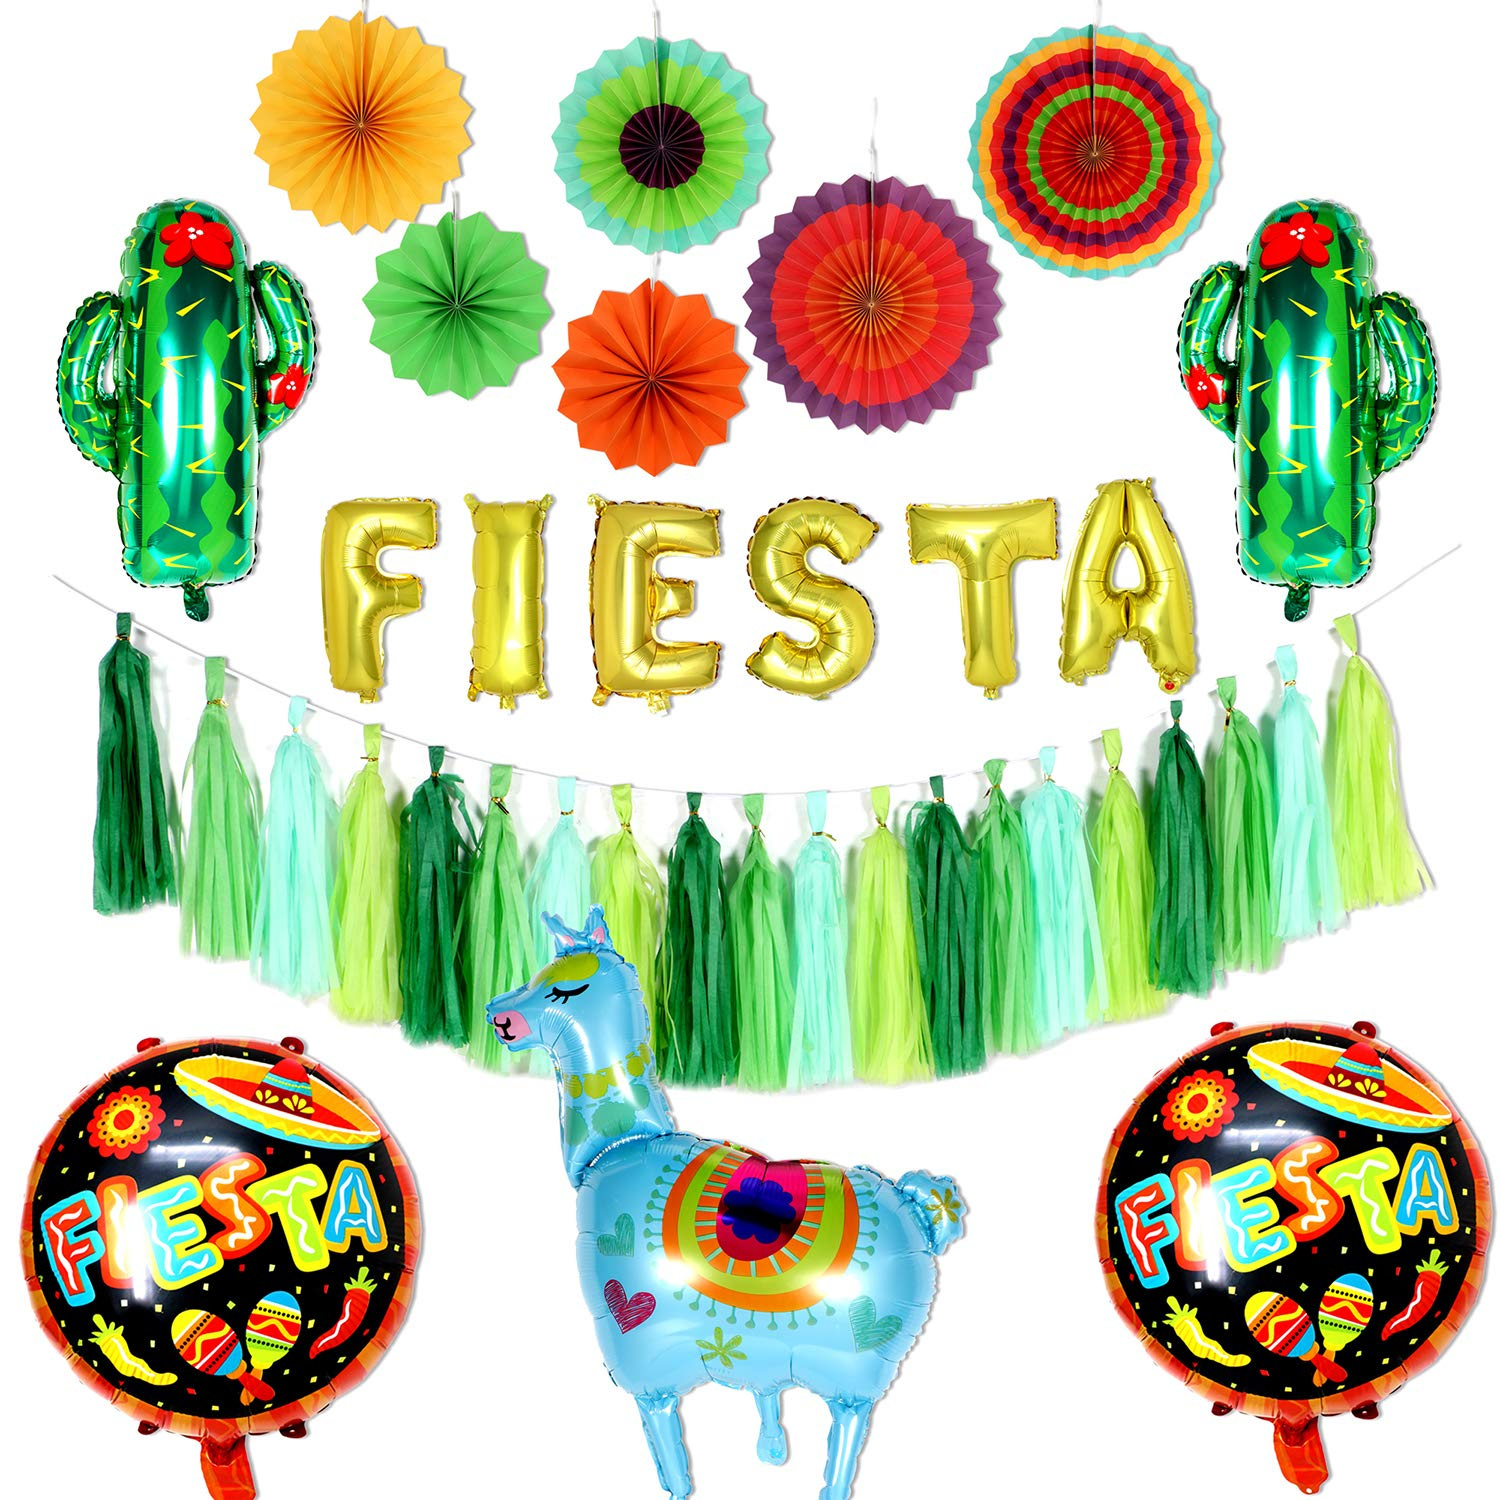 Tacobear Fiesta Mexican Party Decorations Colorful Paper Fans Gold Fiesta Balloon Banner Fiesta Party Tassel Garland Llama And Cactus Balloons For Mexican Fiesta Theme Birthday Party Supplies Green Art Craft Supplies